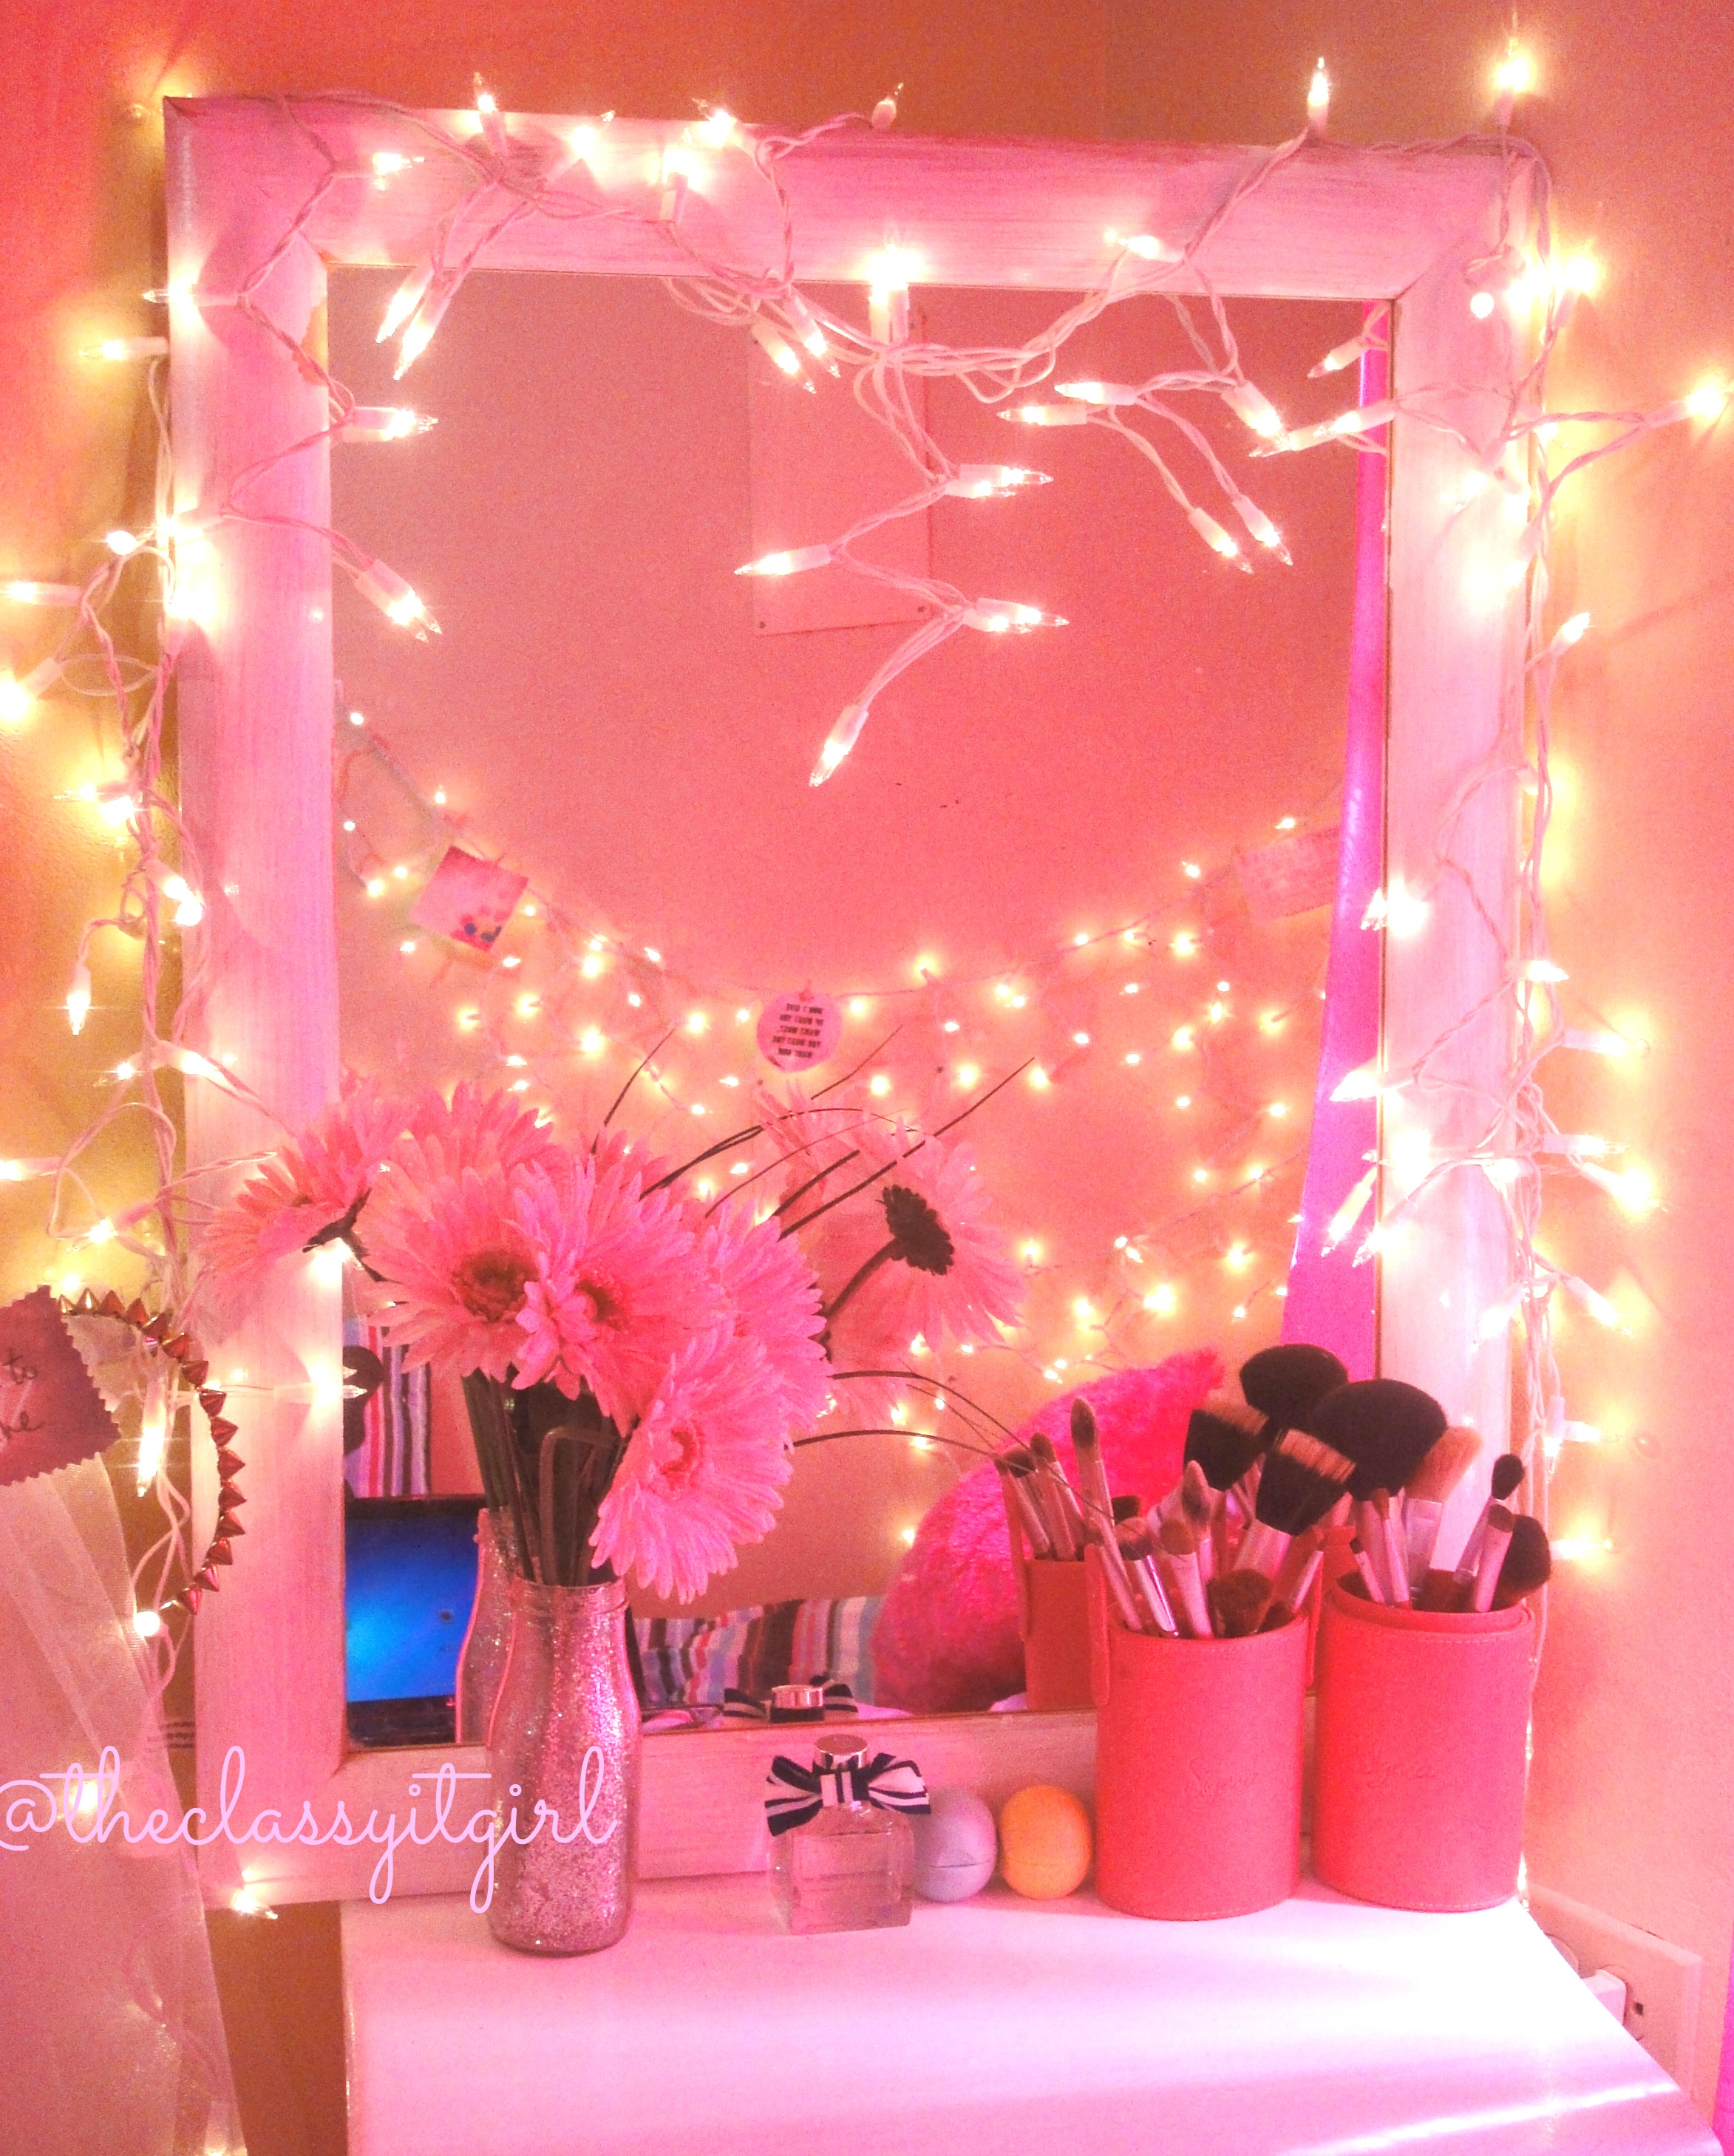 Best Dormspiration Diy Room Décor The Classy It Girl This Month